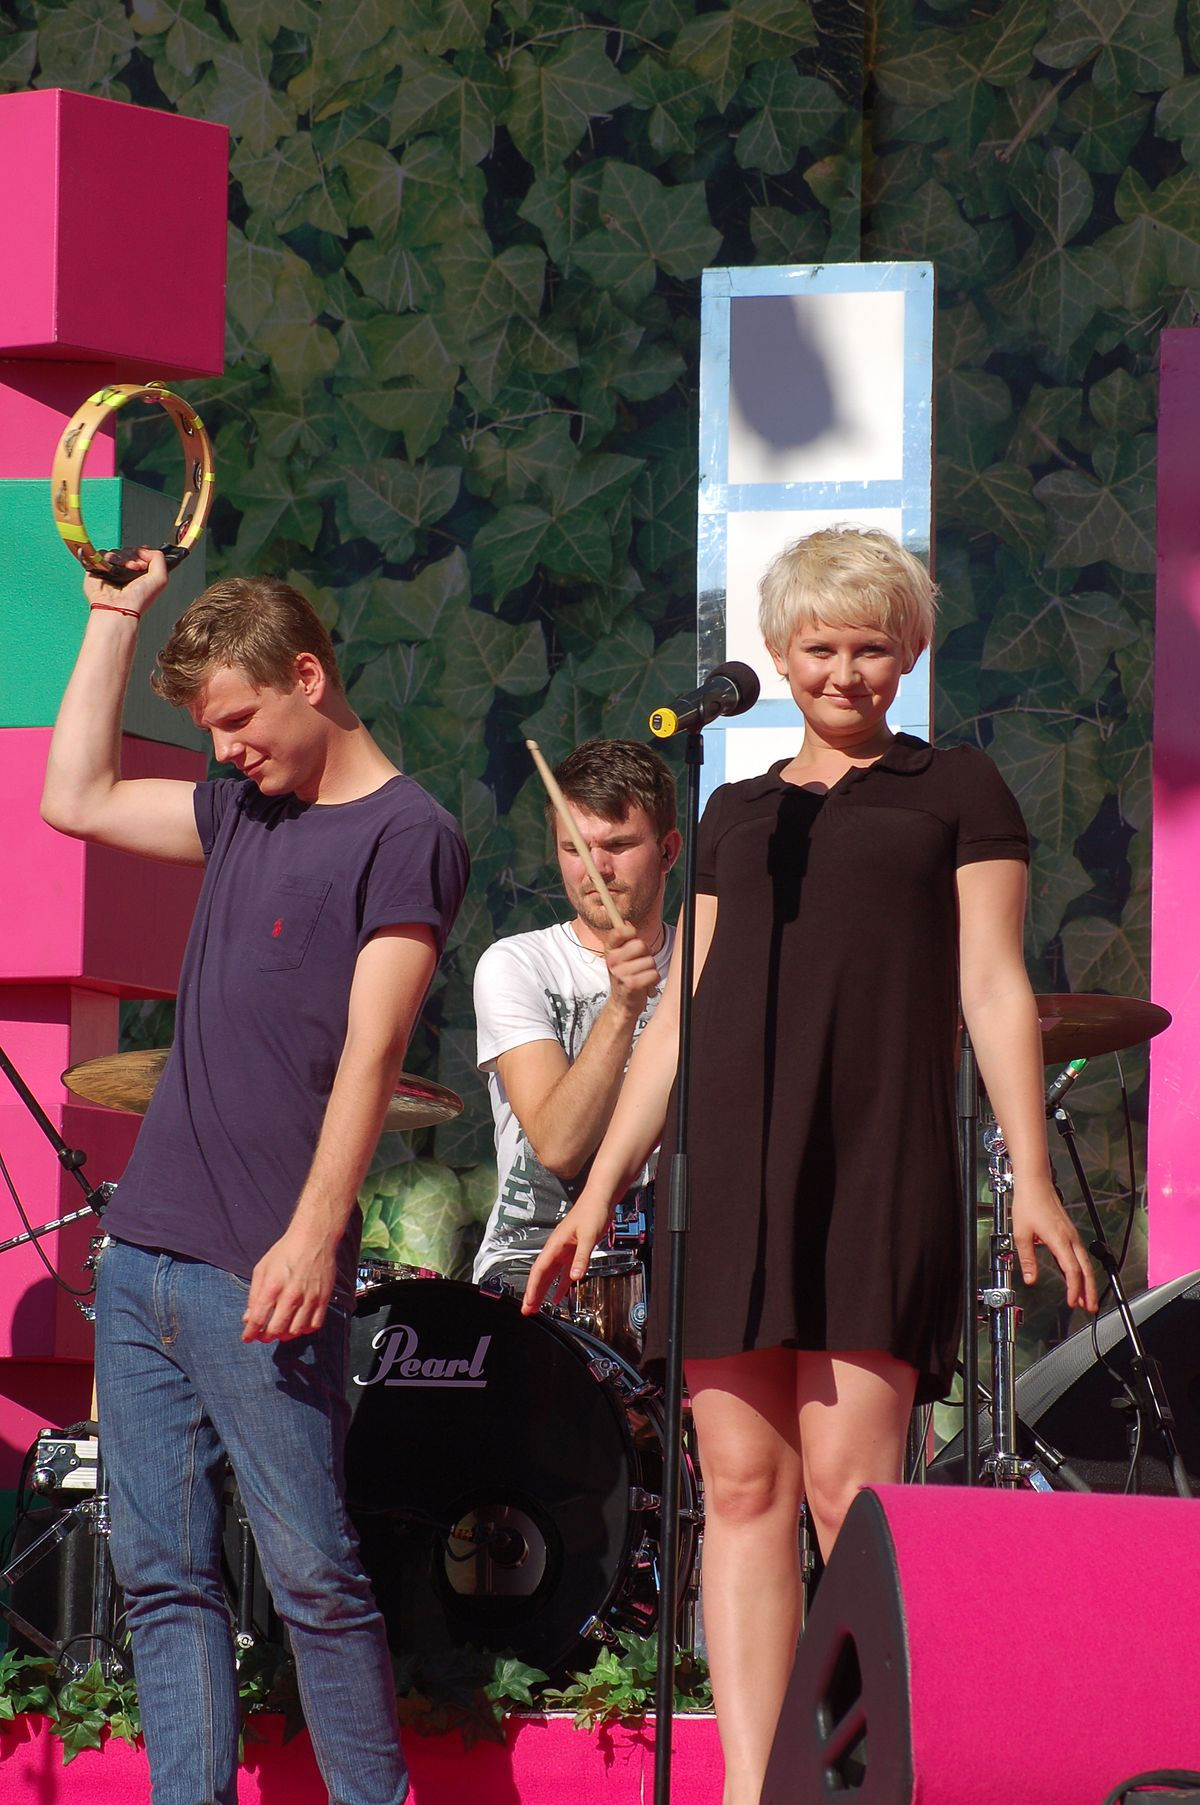 alphabeat stine anders dating Stine bramsen simonsen (born on december 13, 1996 in ry, denmark) commonly known as just stine bramsen is a danish singer and songwriter who is best known as the lead singer of the pop group alphabeat since 2004.